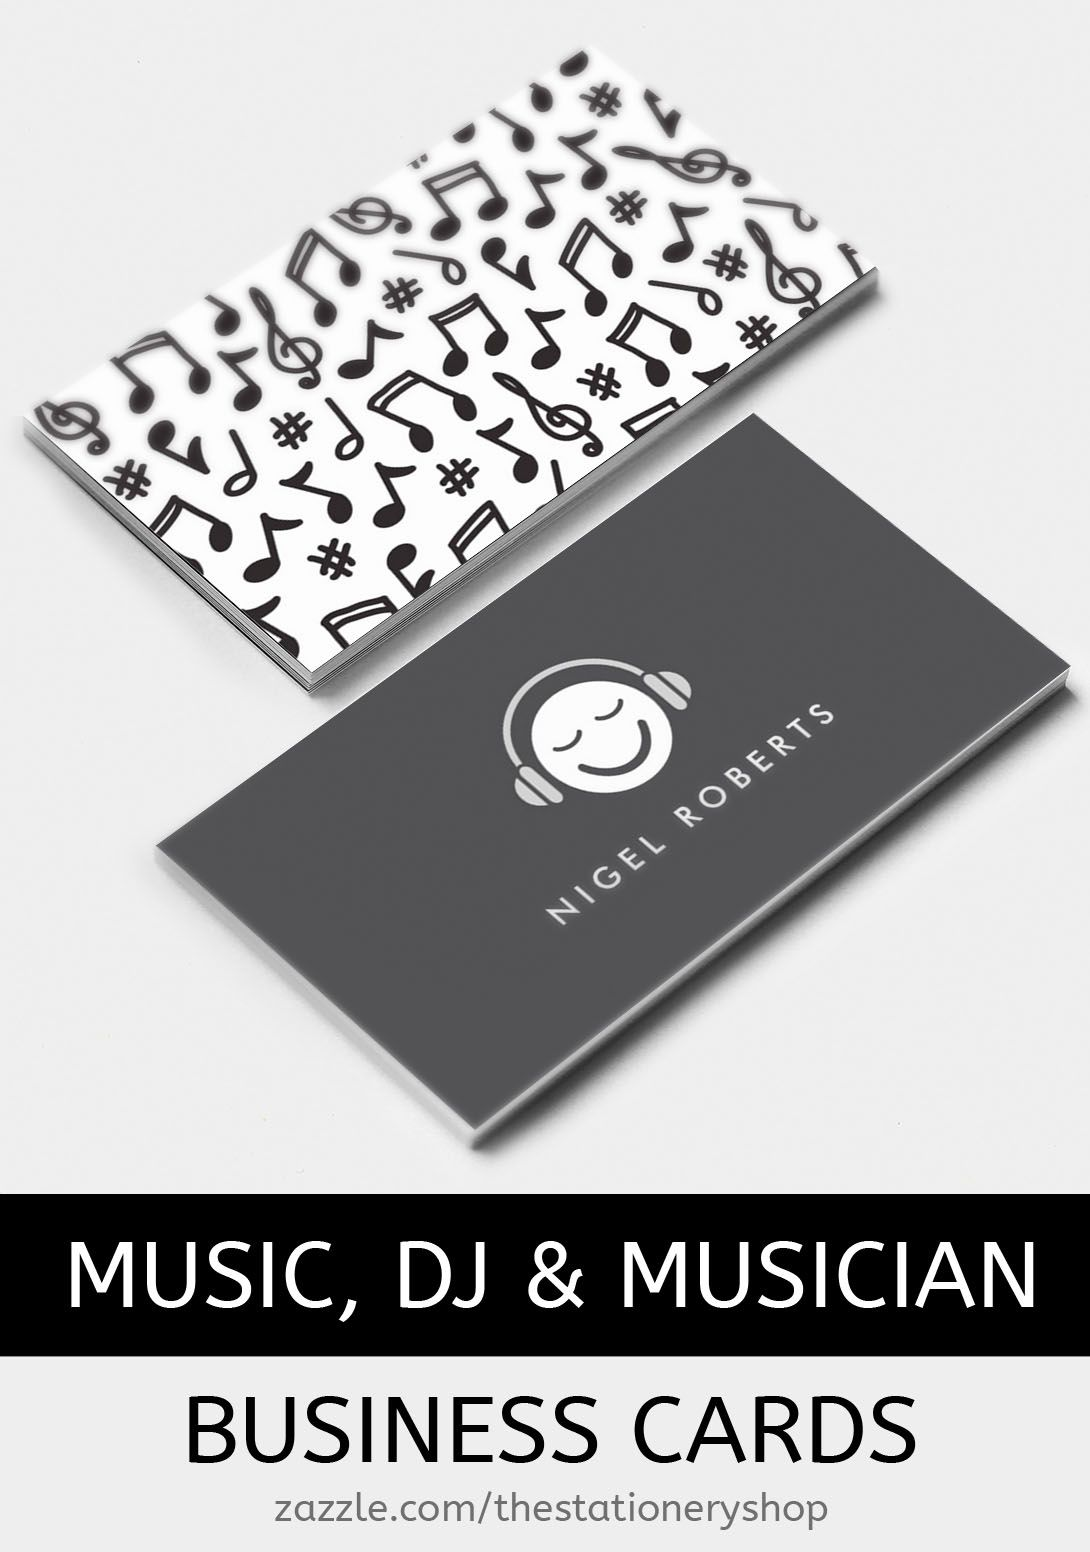 Music business cards from the stationery shop zazzle ideal for music business cards from the stationery shop zazzle ideal for djs musicians reheart Choice Image